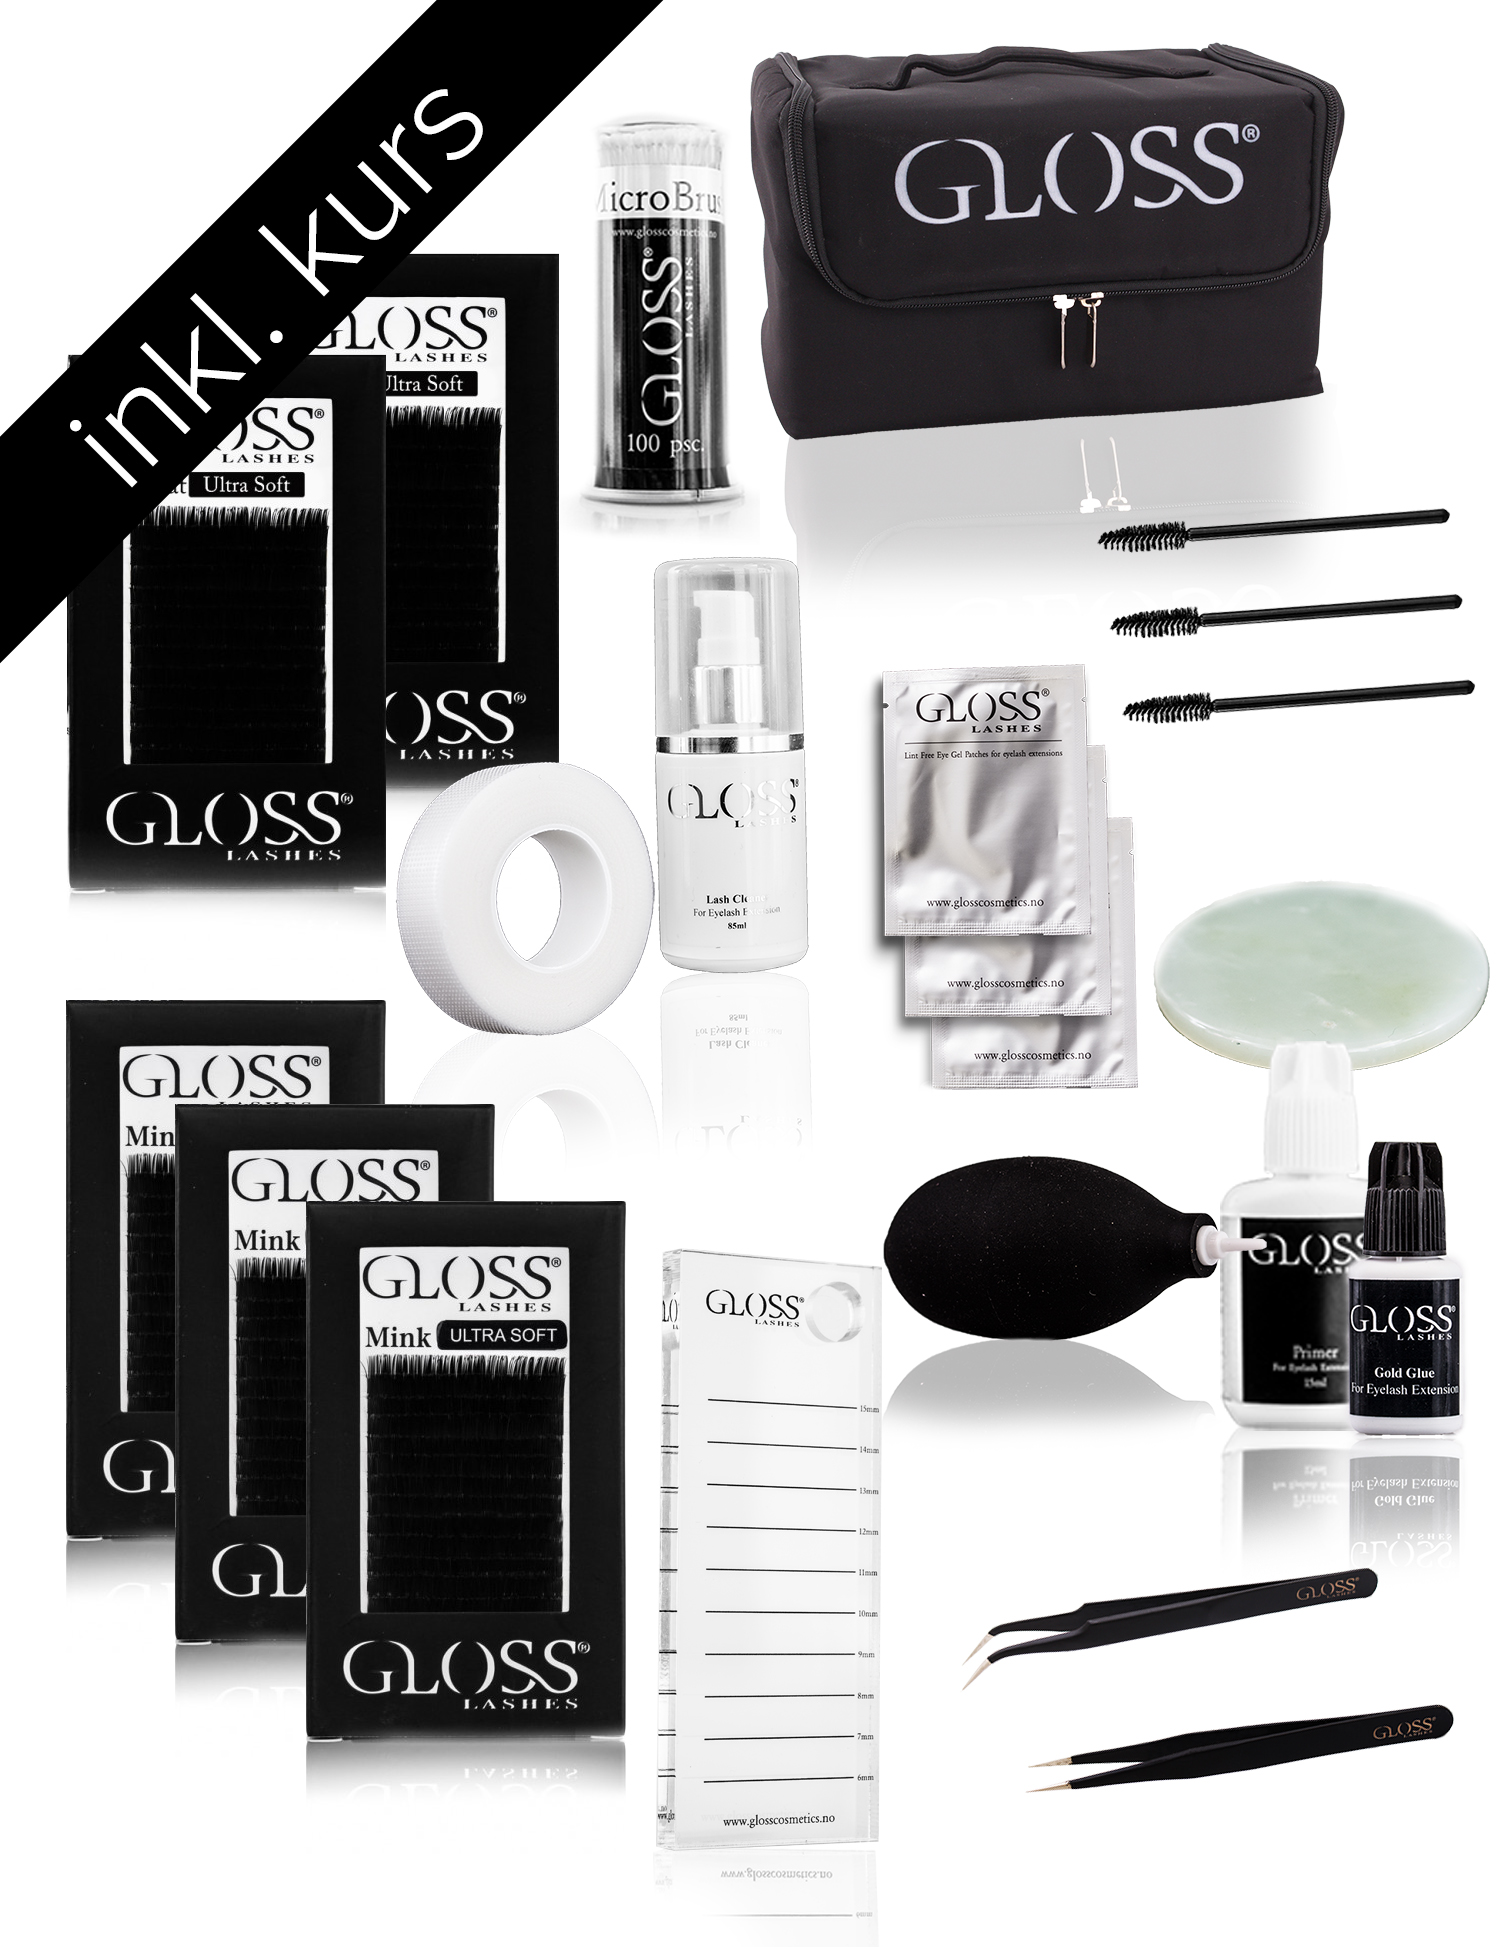 Kurs Pakke Gloss Lashes 1:1 Klassisk teknikk set BASIC PLUS